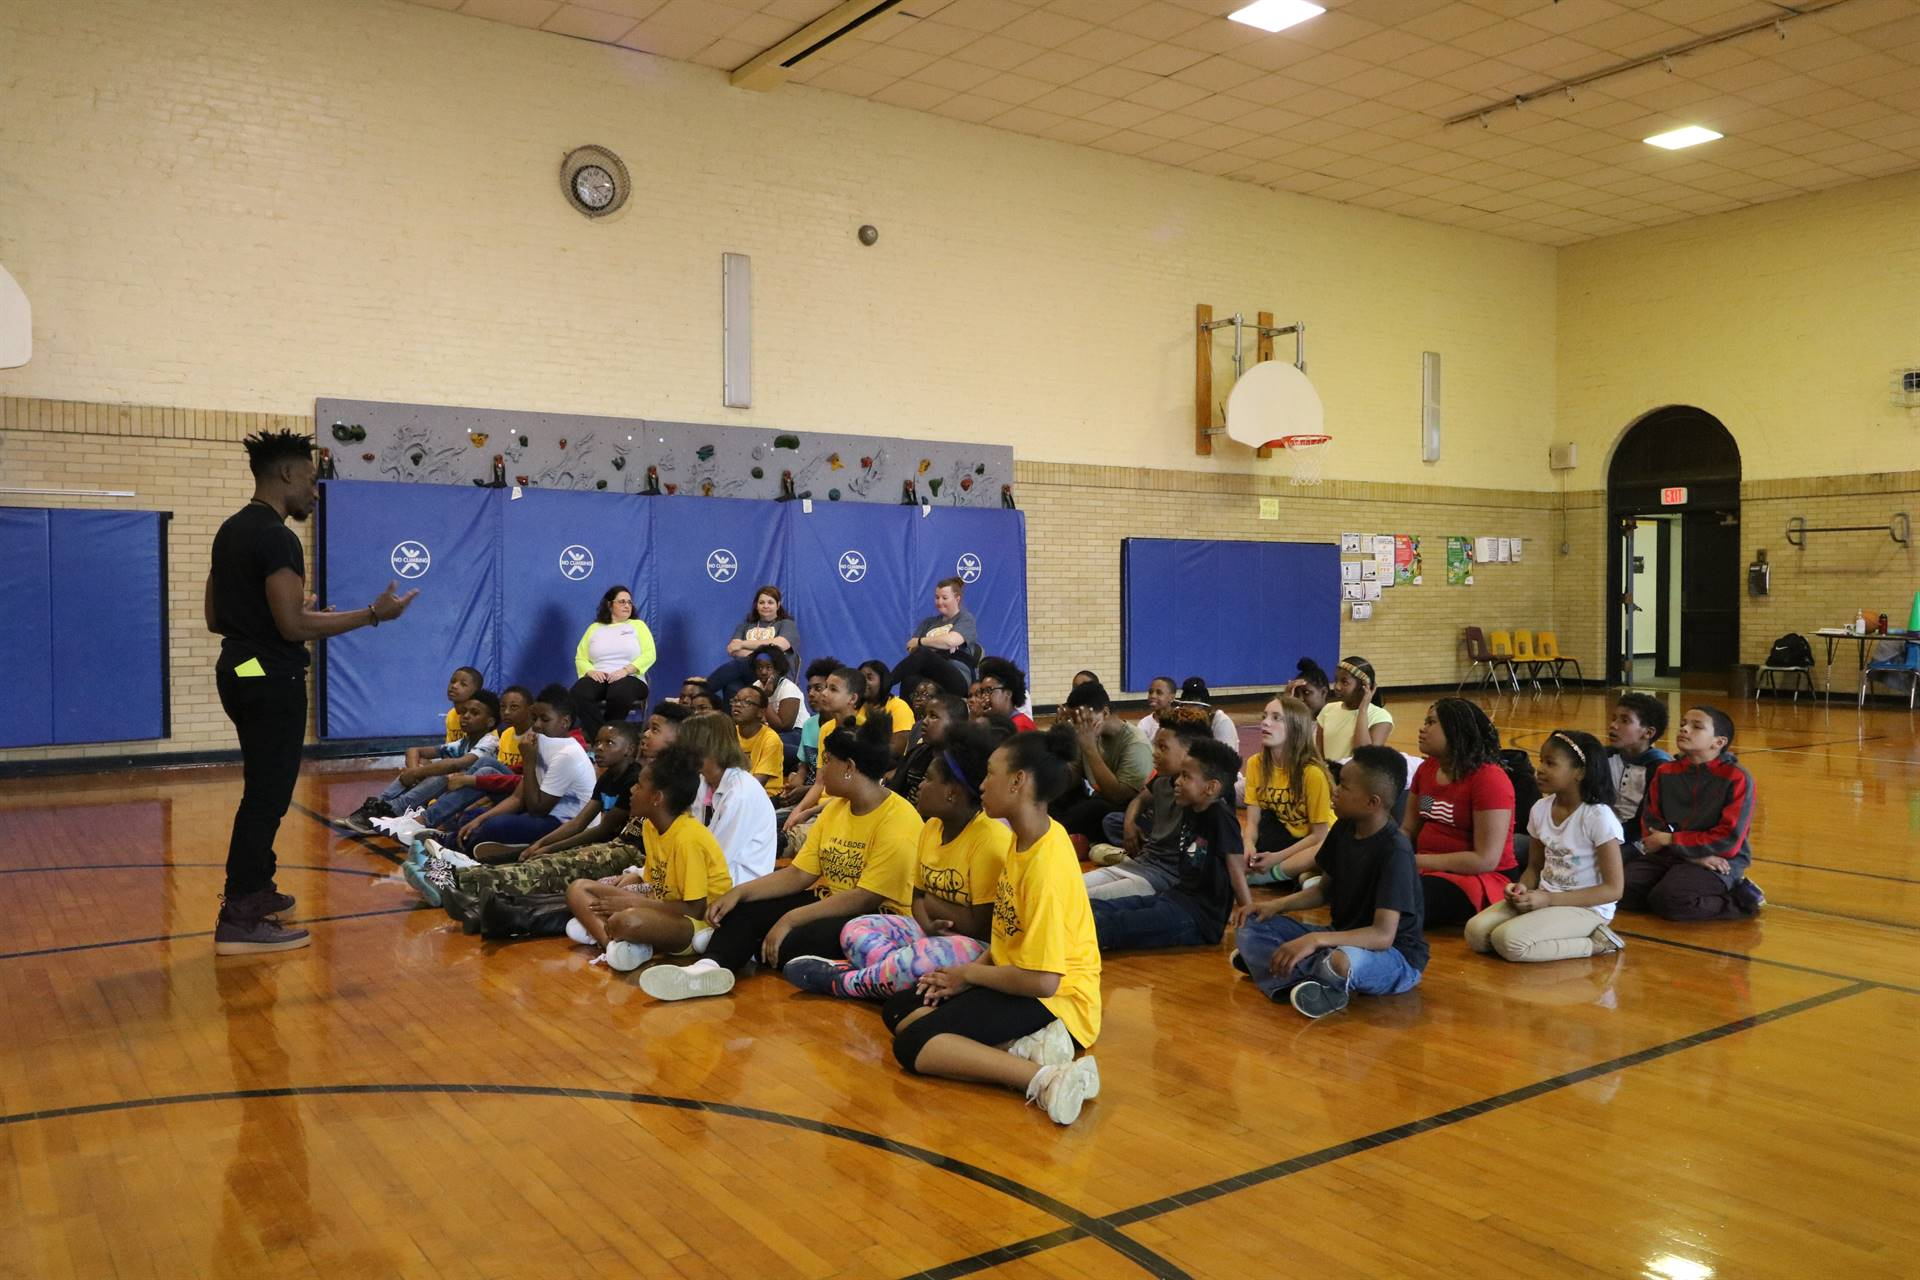 Motivational speaker talks to kids sitting on floor in Oxford gym